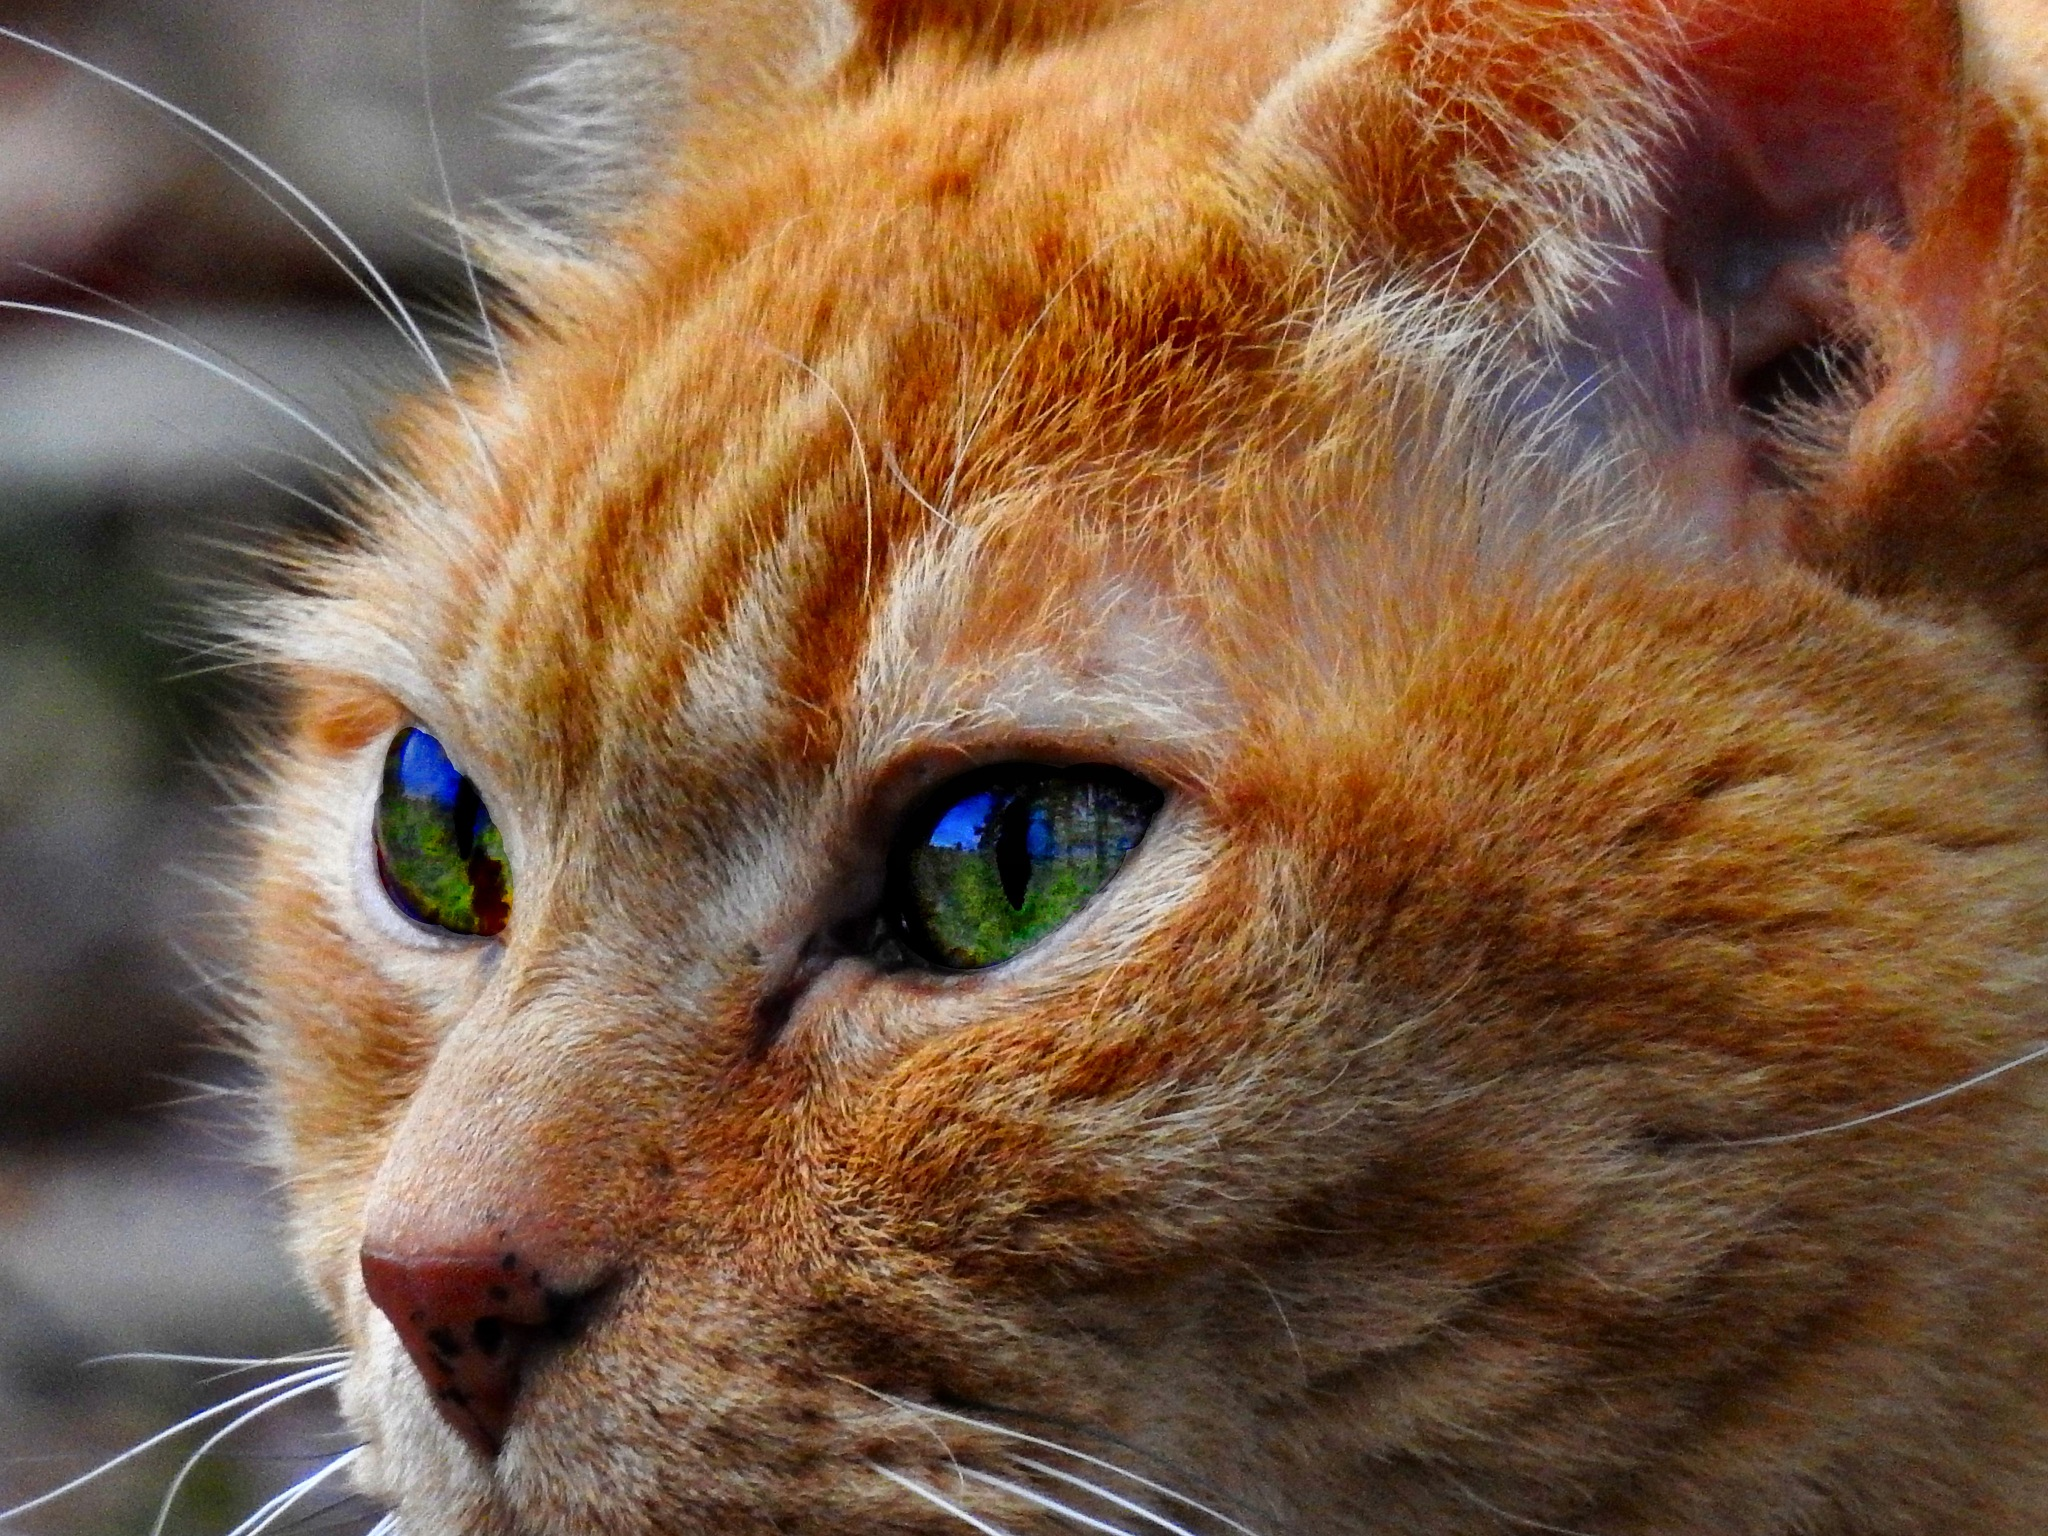 Cider, my Orange Tabby Cat by Patty Stockton